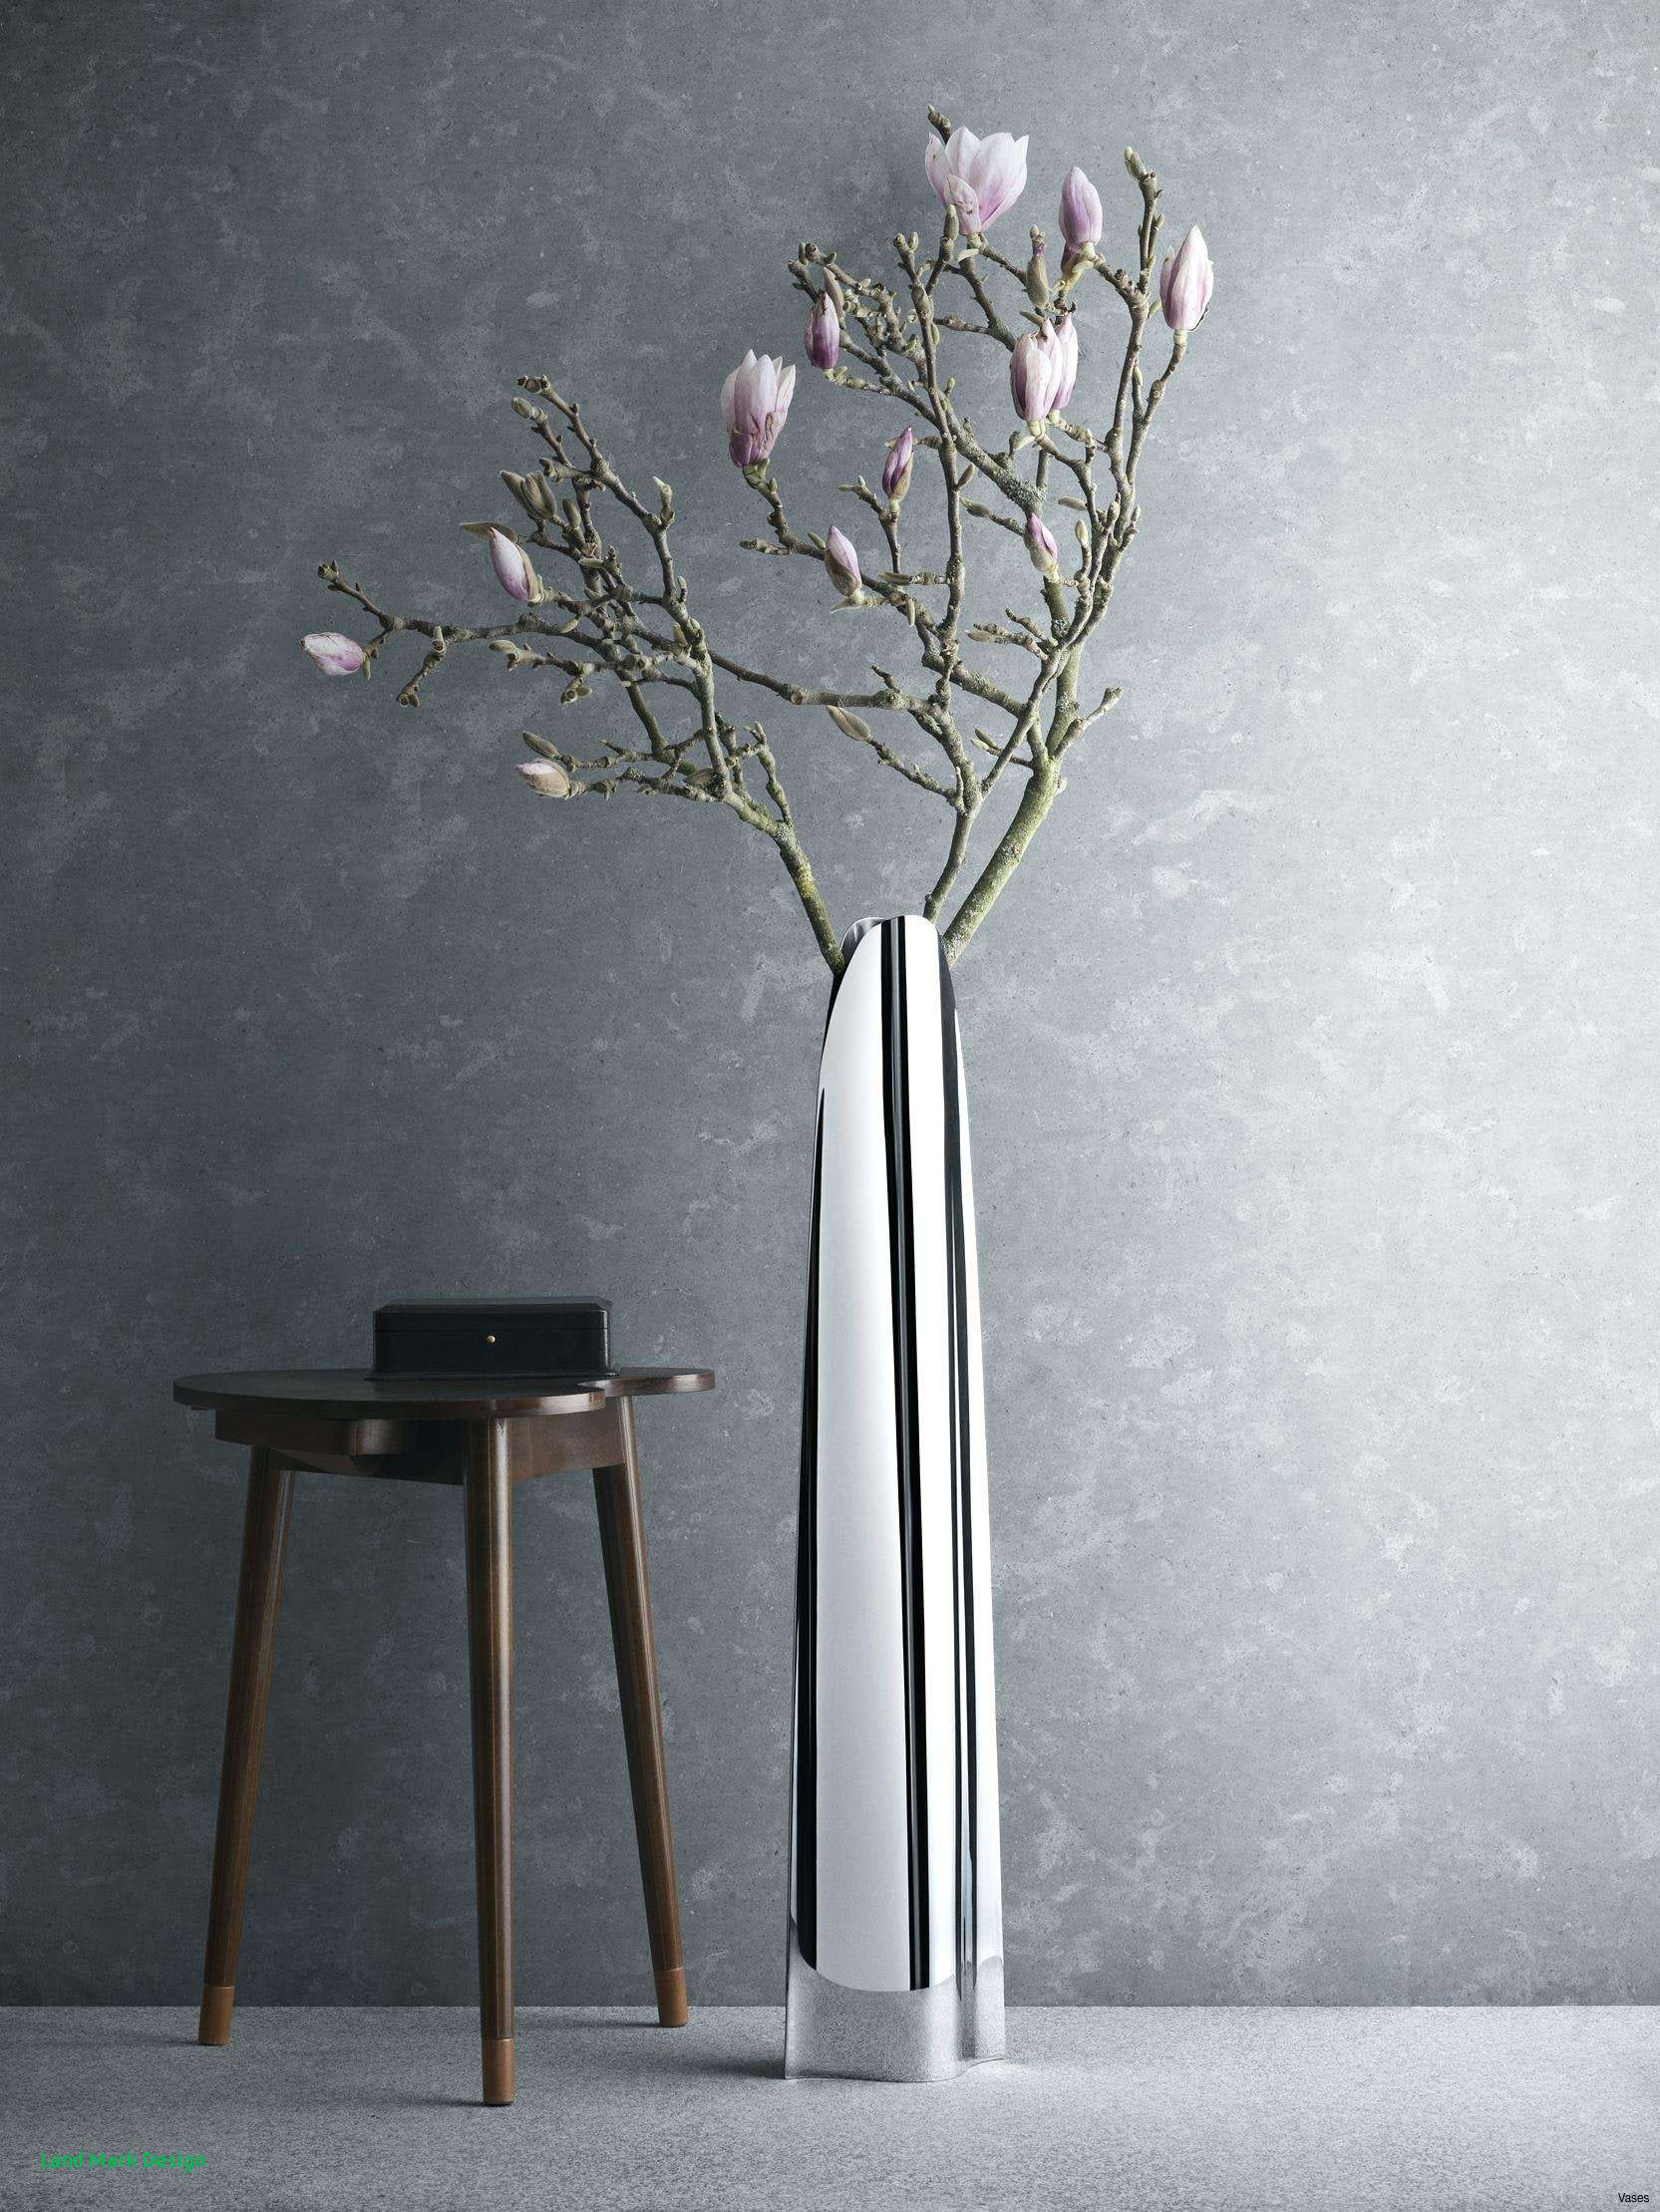 3 foot vase of modern tall vases images modern living room vases elegant 24 floor throughout gallery of modern tall vases